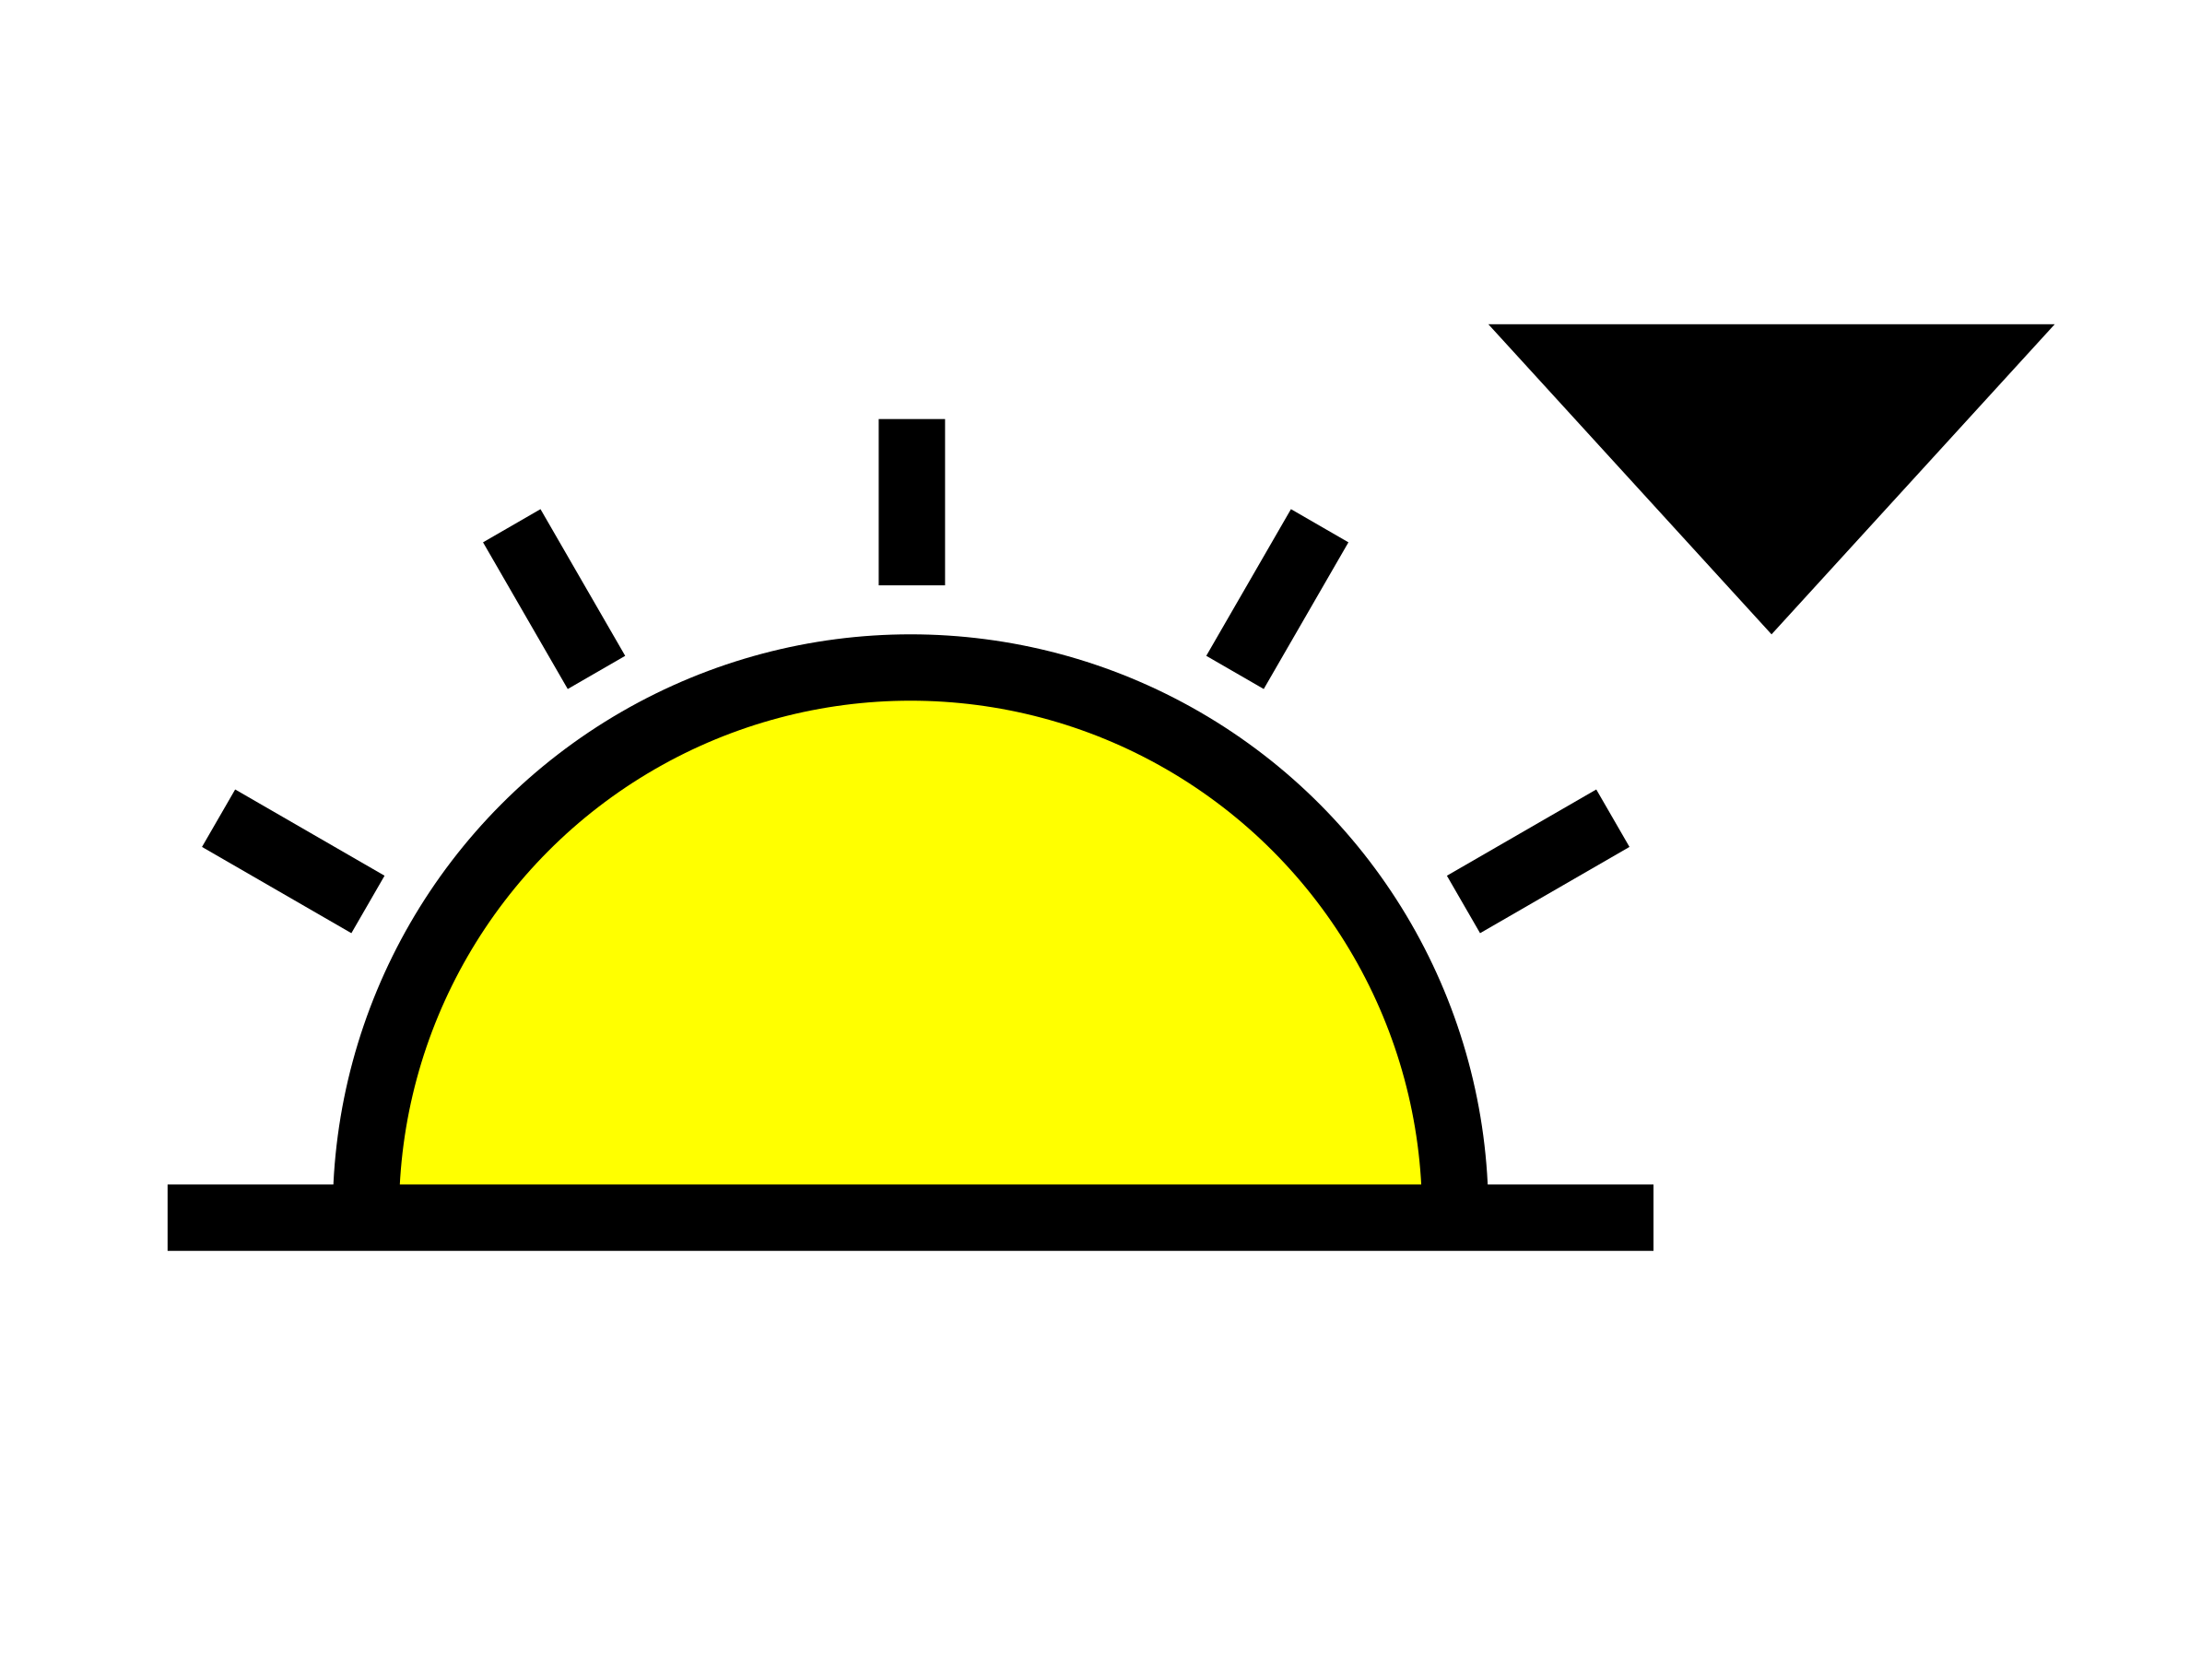 Sunset symbol by bartovan